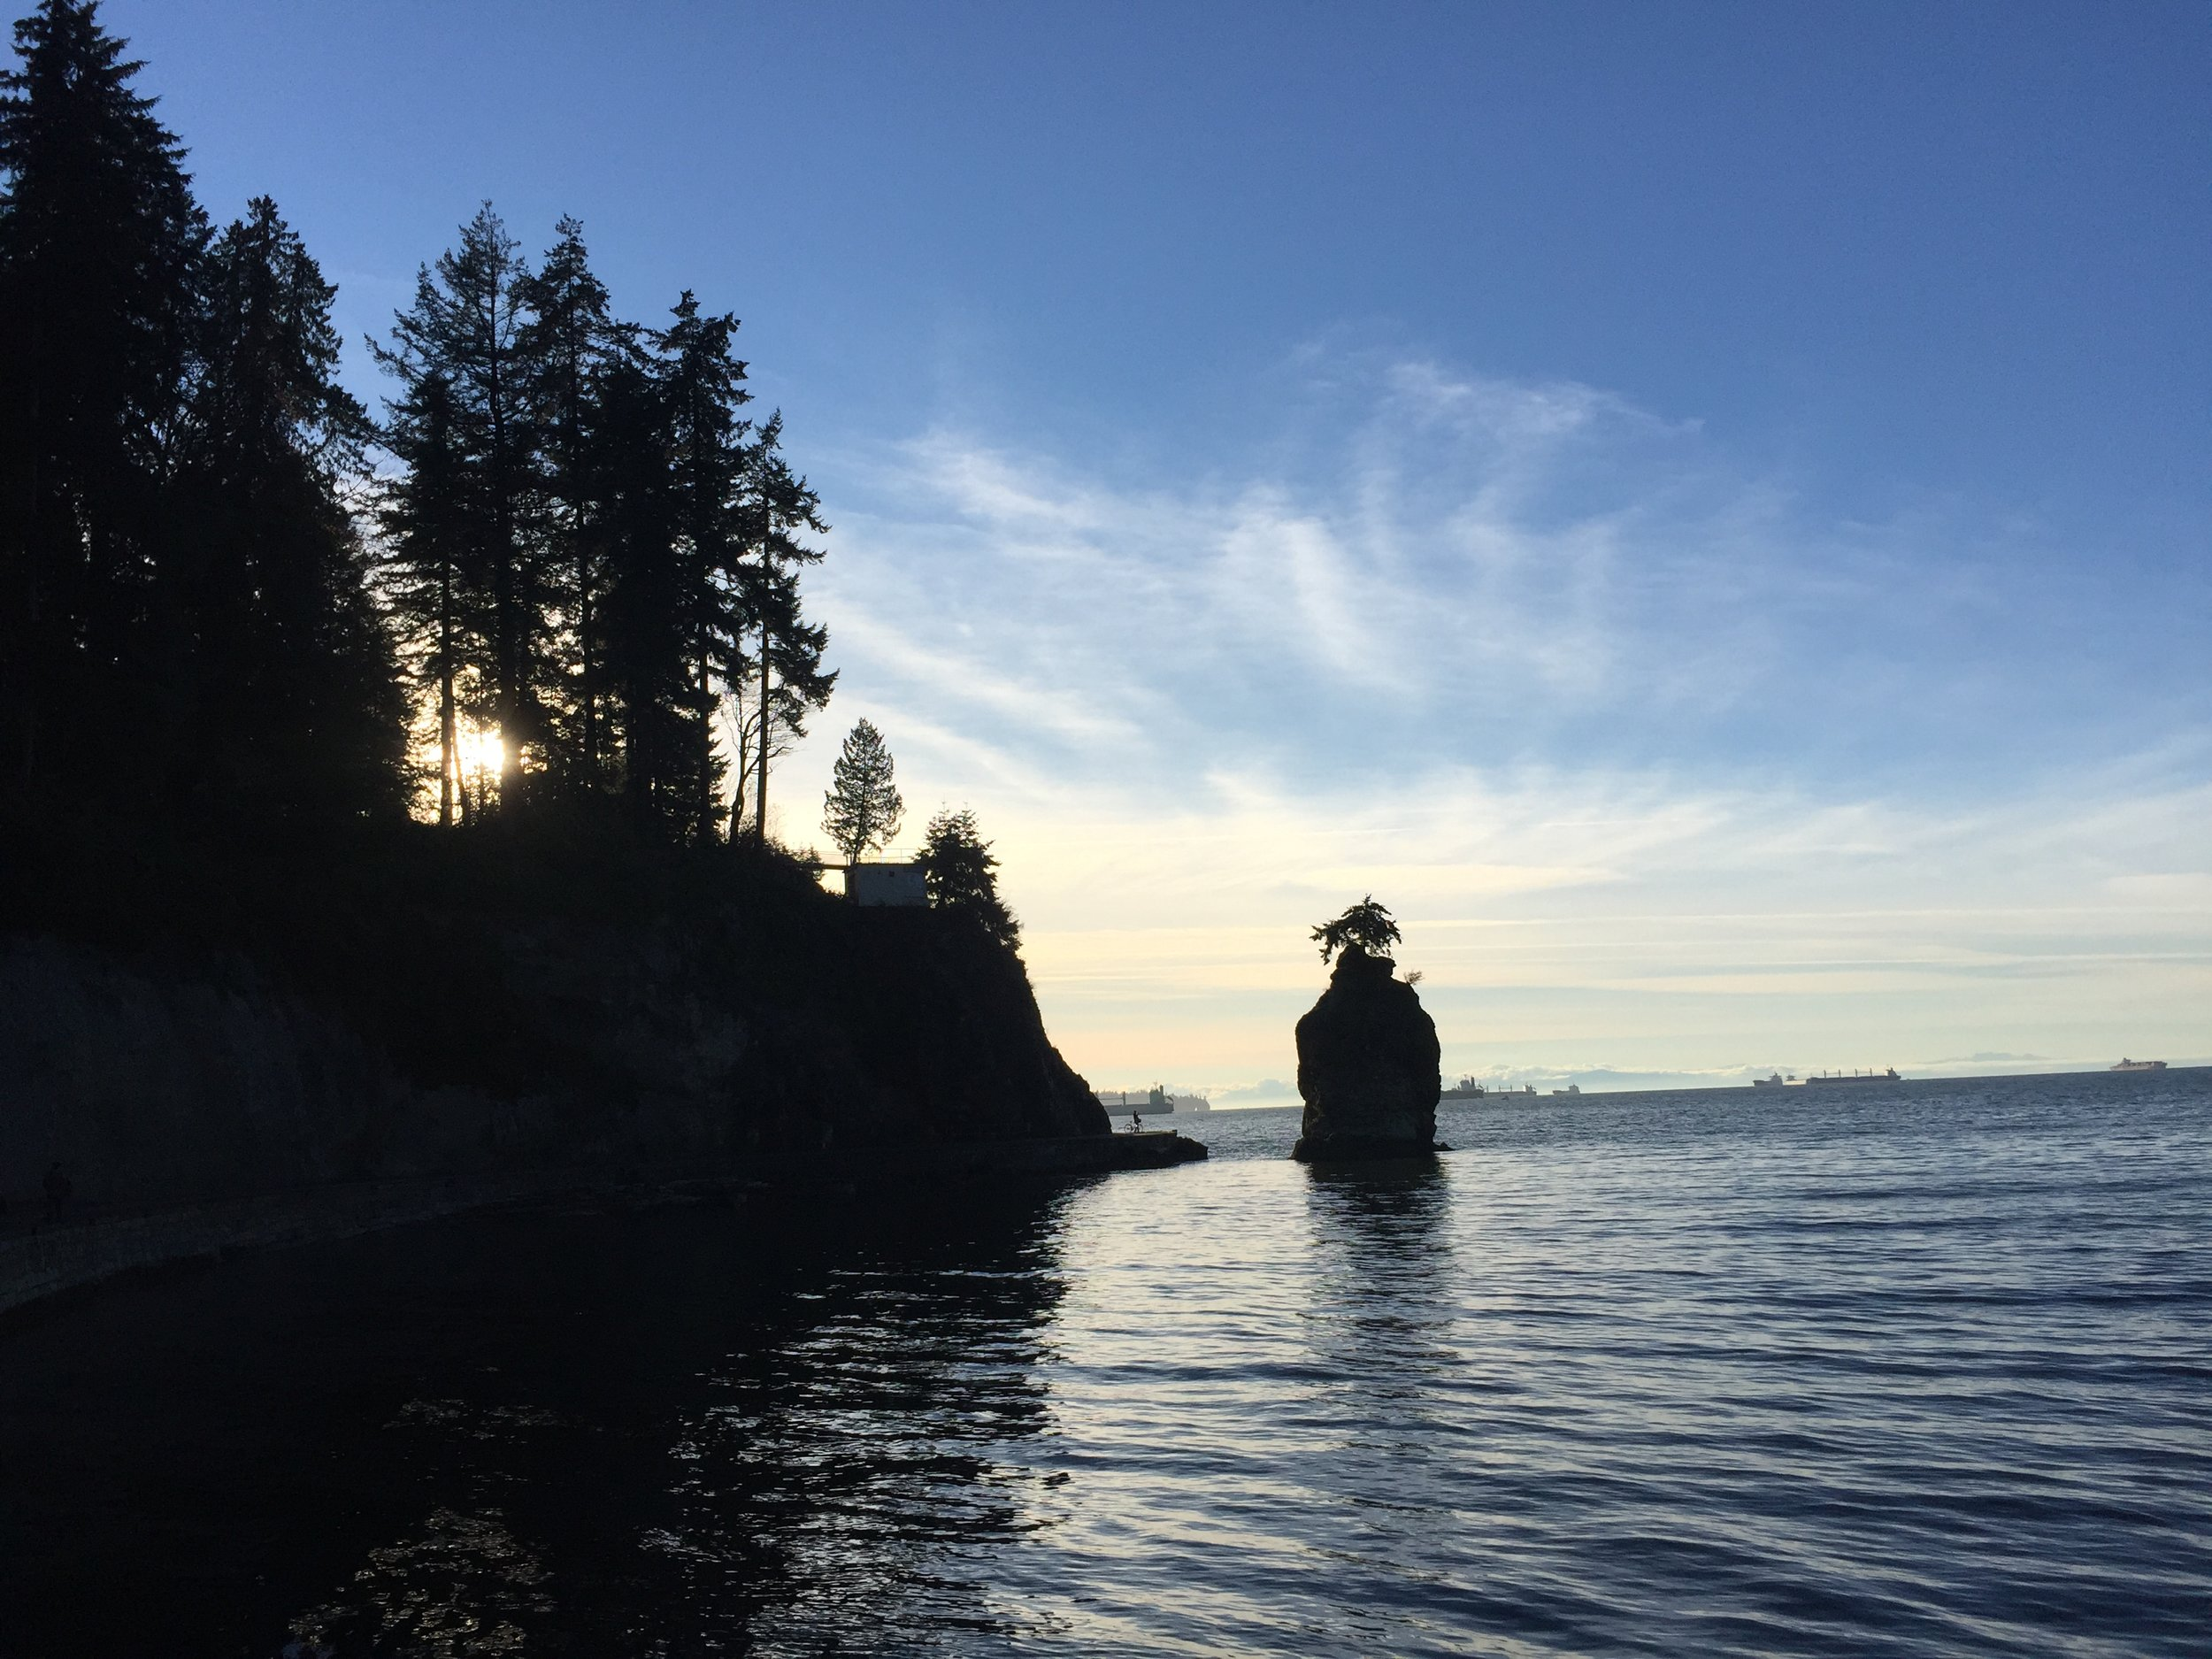 Sunset View Of Siwash Rock From the Seawall in Stanley Park